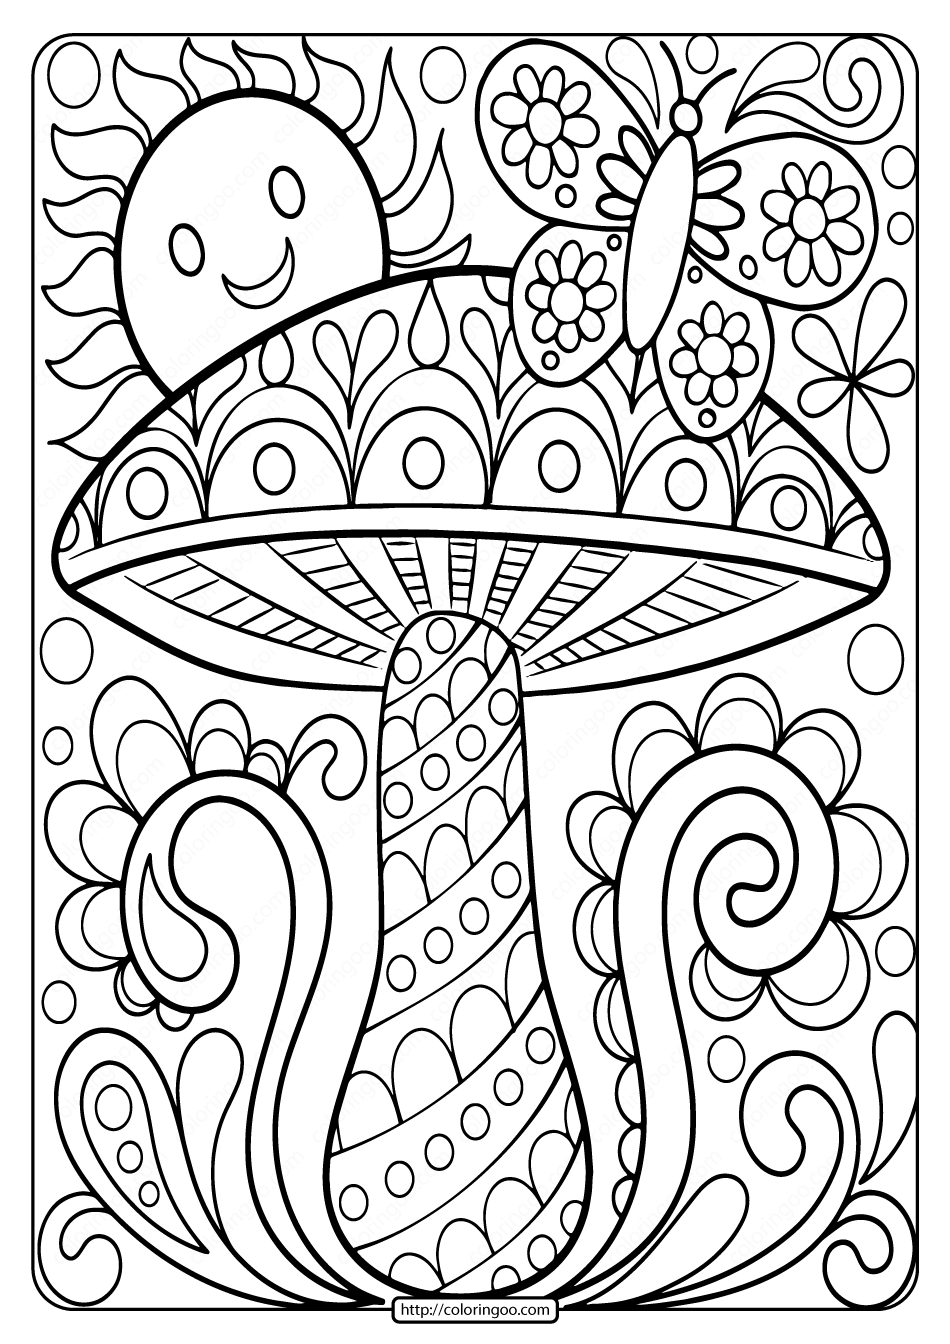 free coloring pages for adults printable stress relief coloring pages to help you find your zen adults for printable free pages coloring